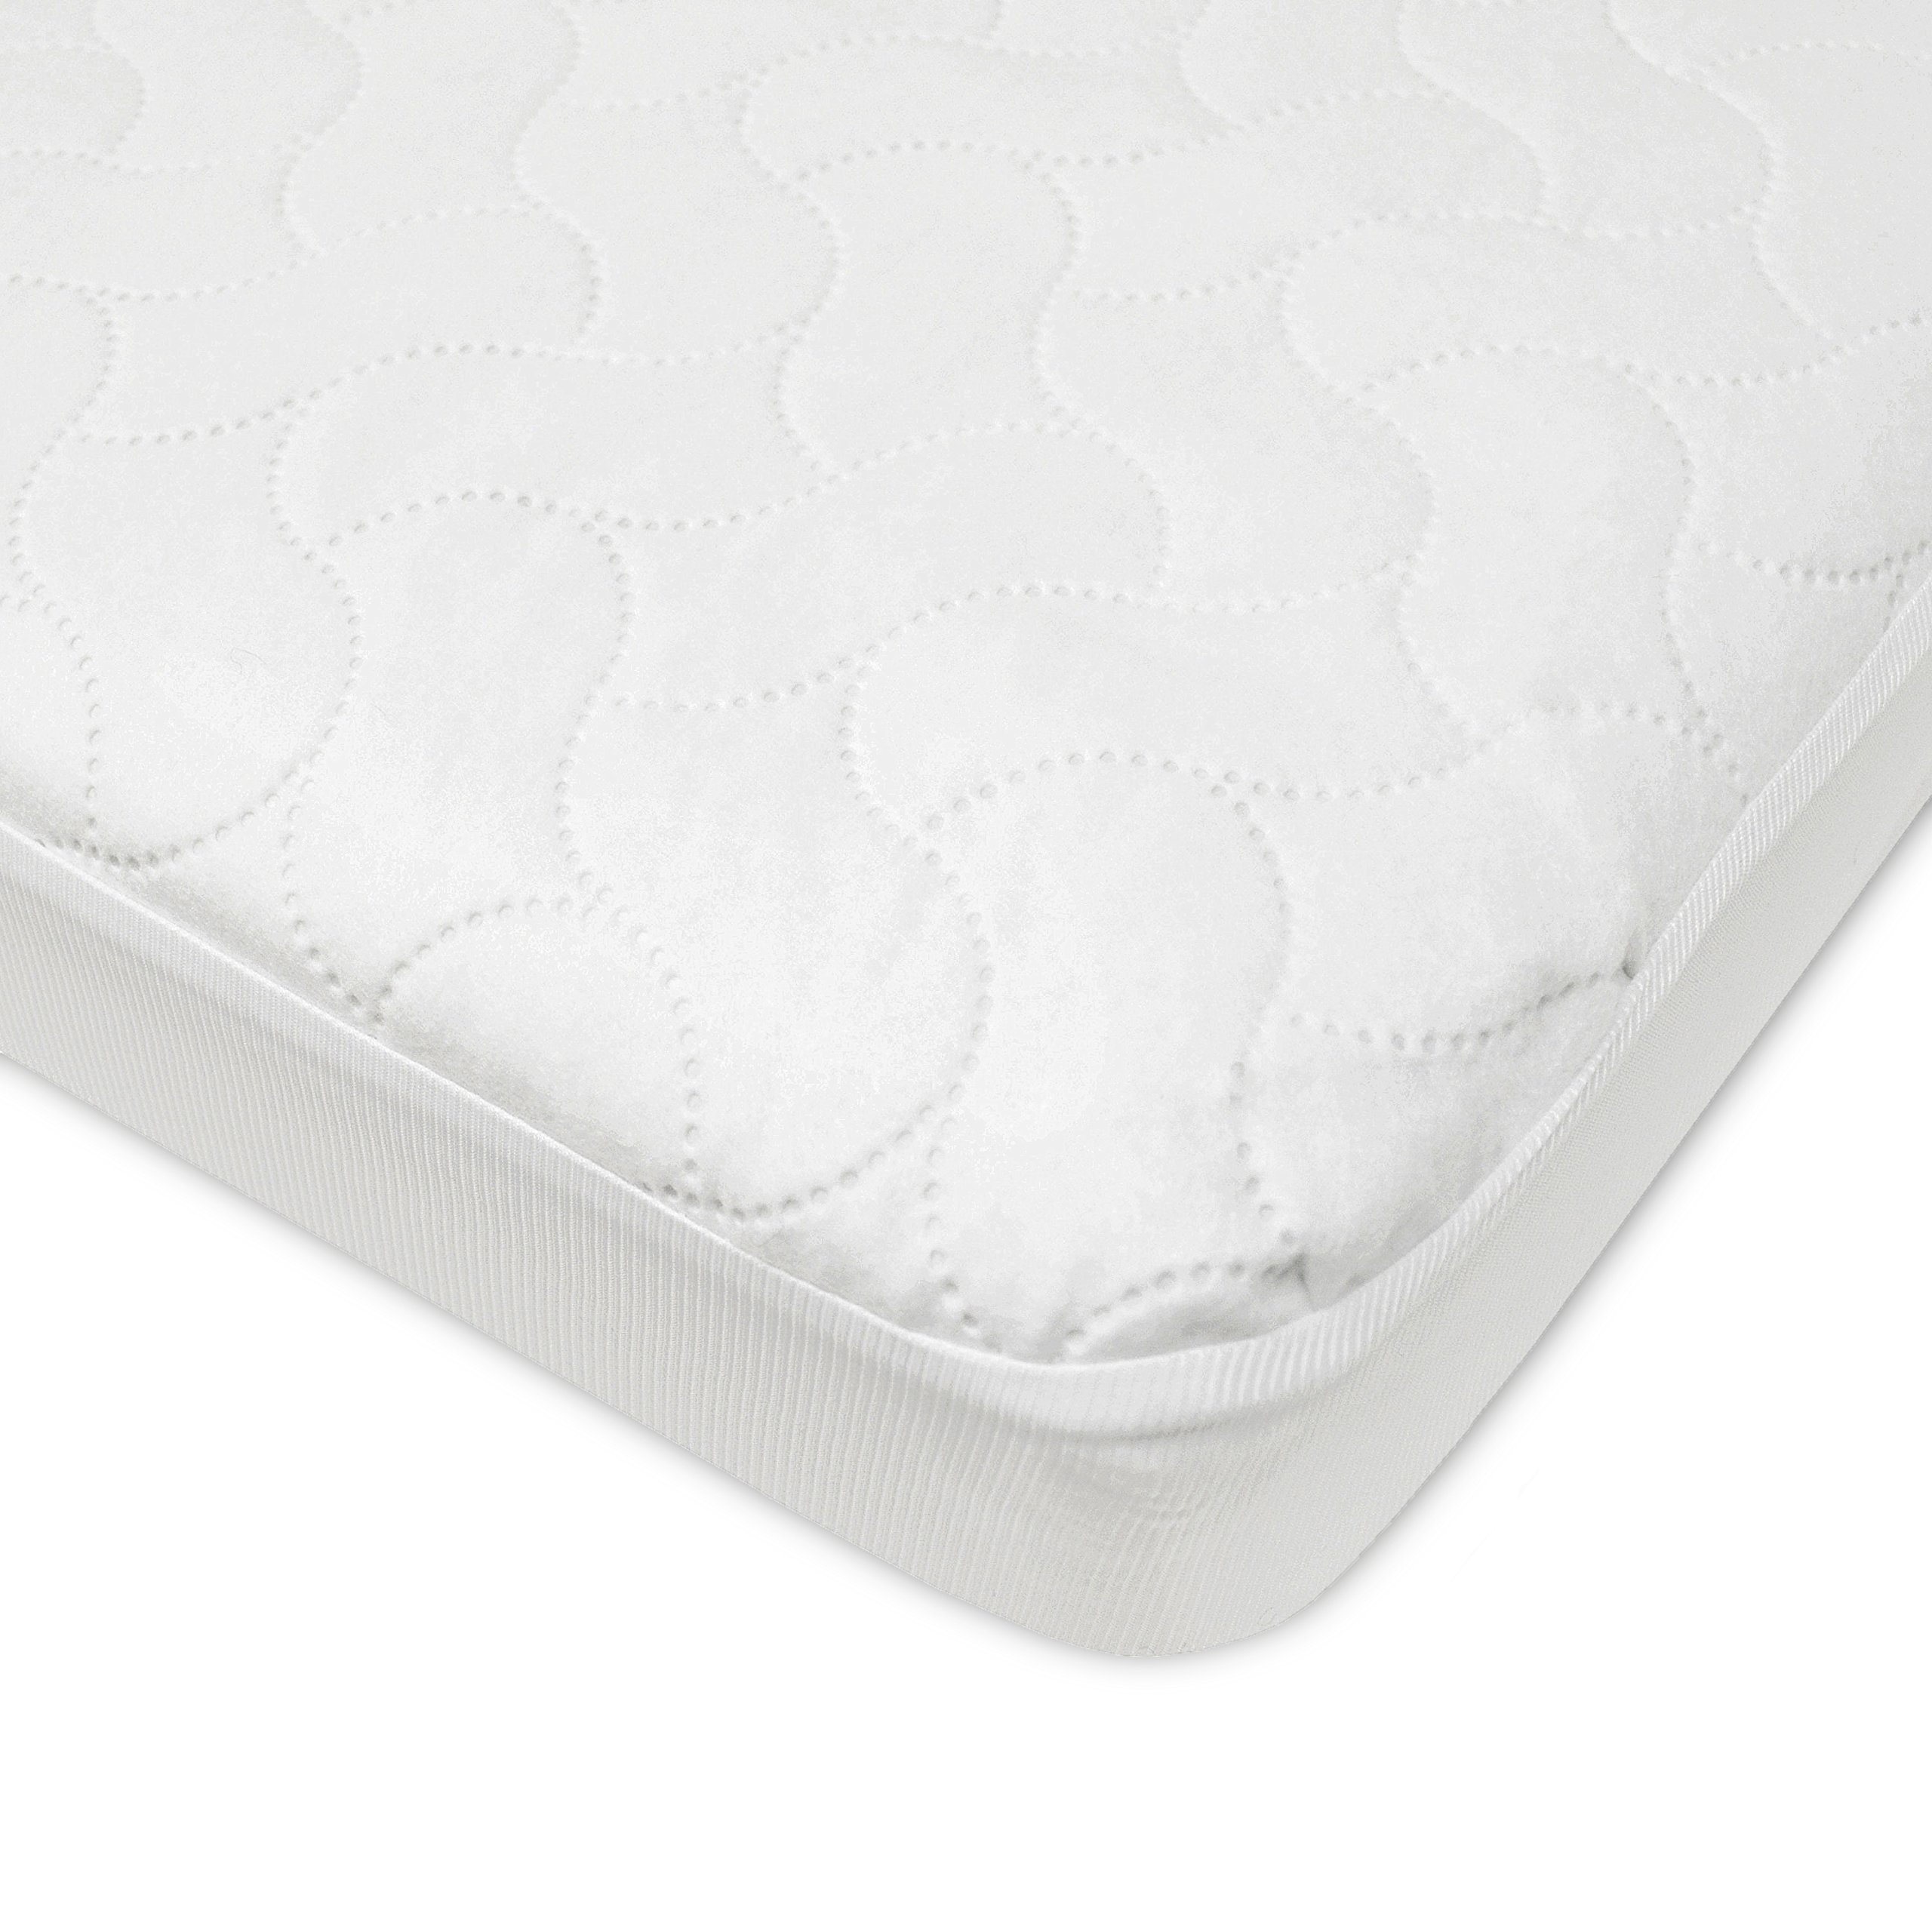 American Baby Company Waterproof Fitted Pack N Play Playard Protective Mattress Pad Cover, White